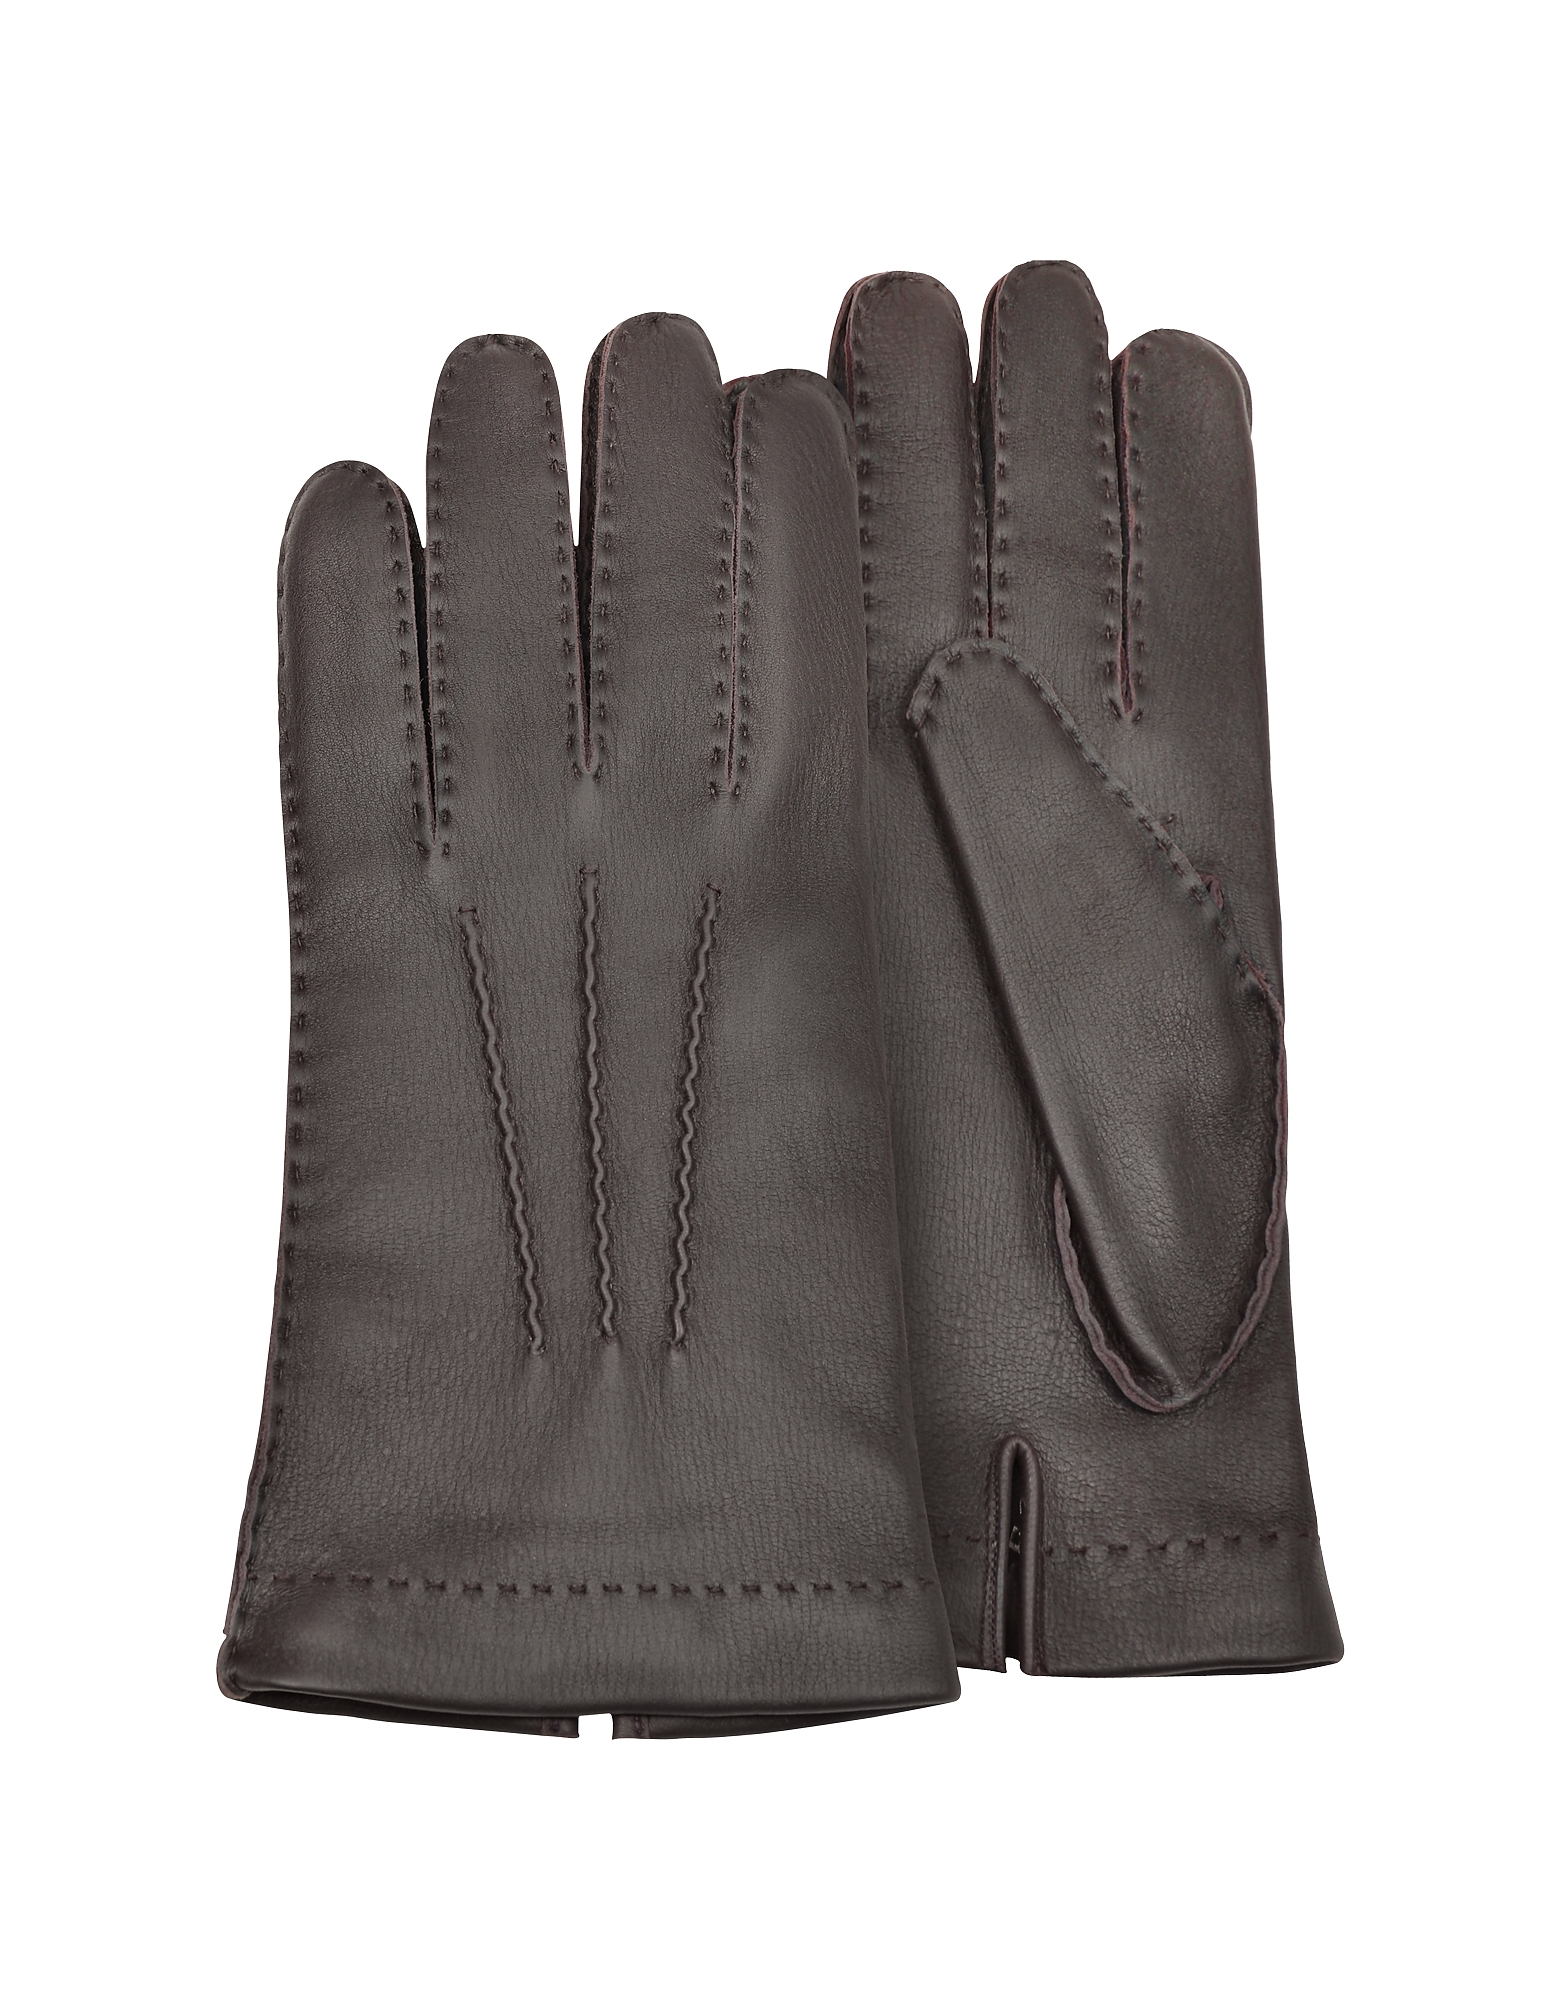 Forzieri Men's Gloves, Men's Cashmere Lined Brown Italian Deer Leather Gloves